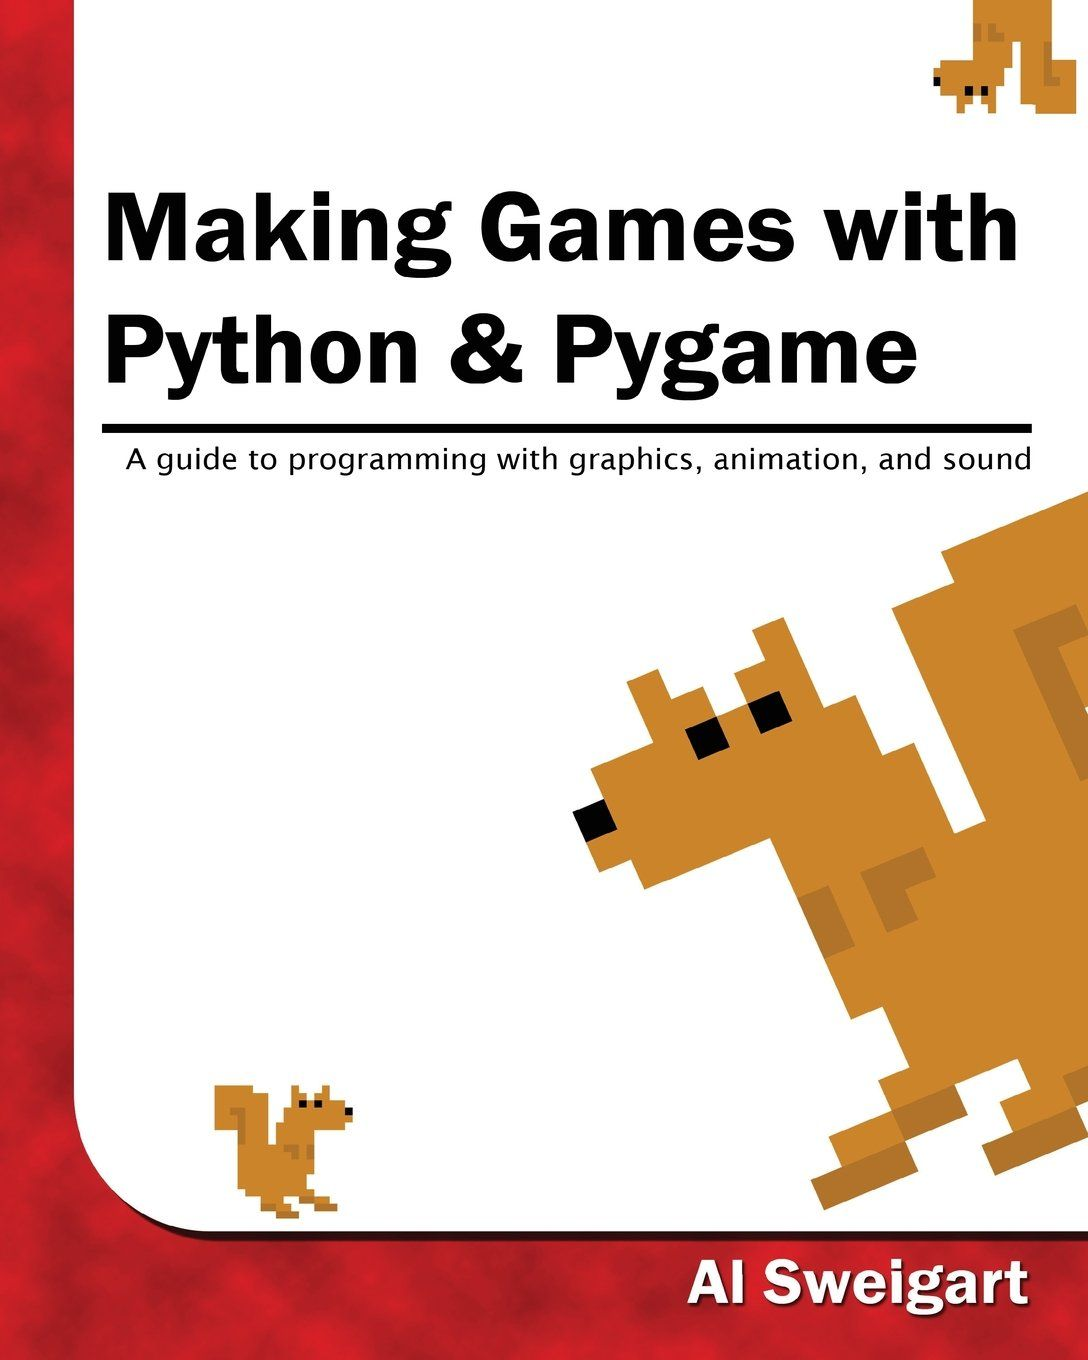 Making Games with Python & Pygame» by Al Sweigart - covers the